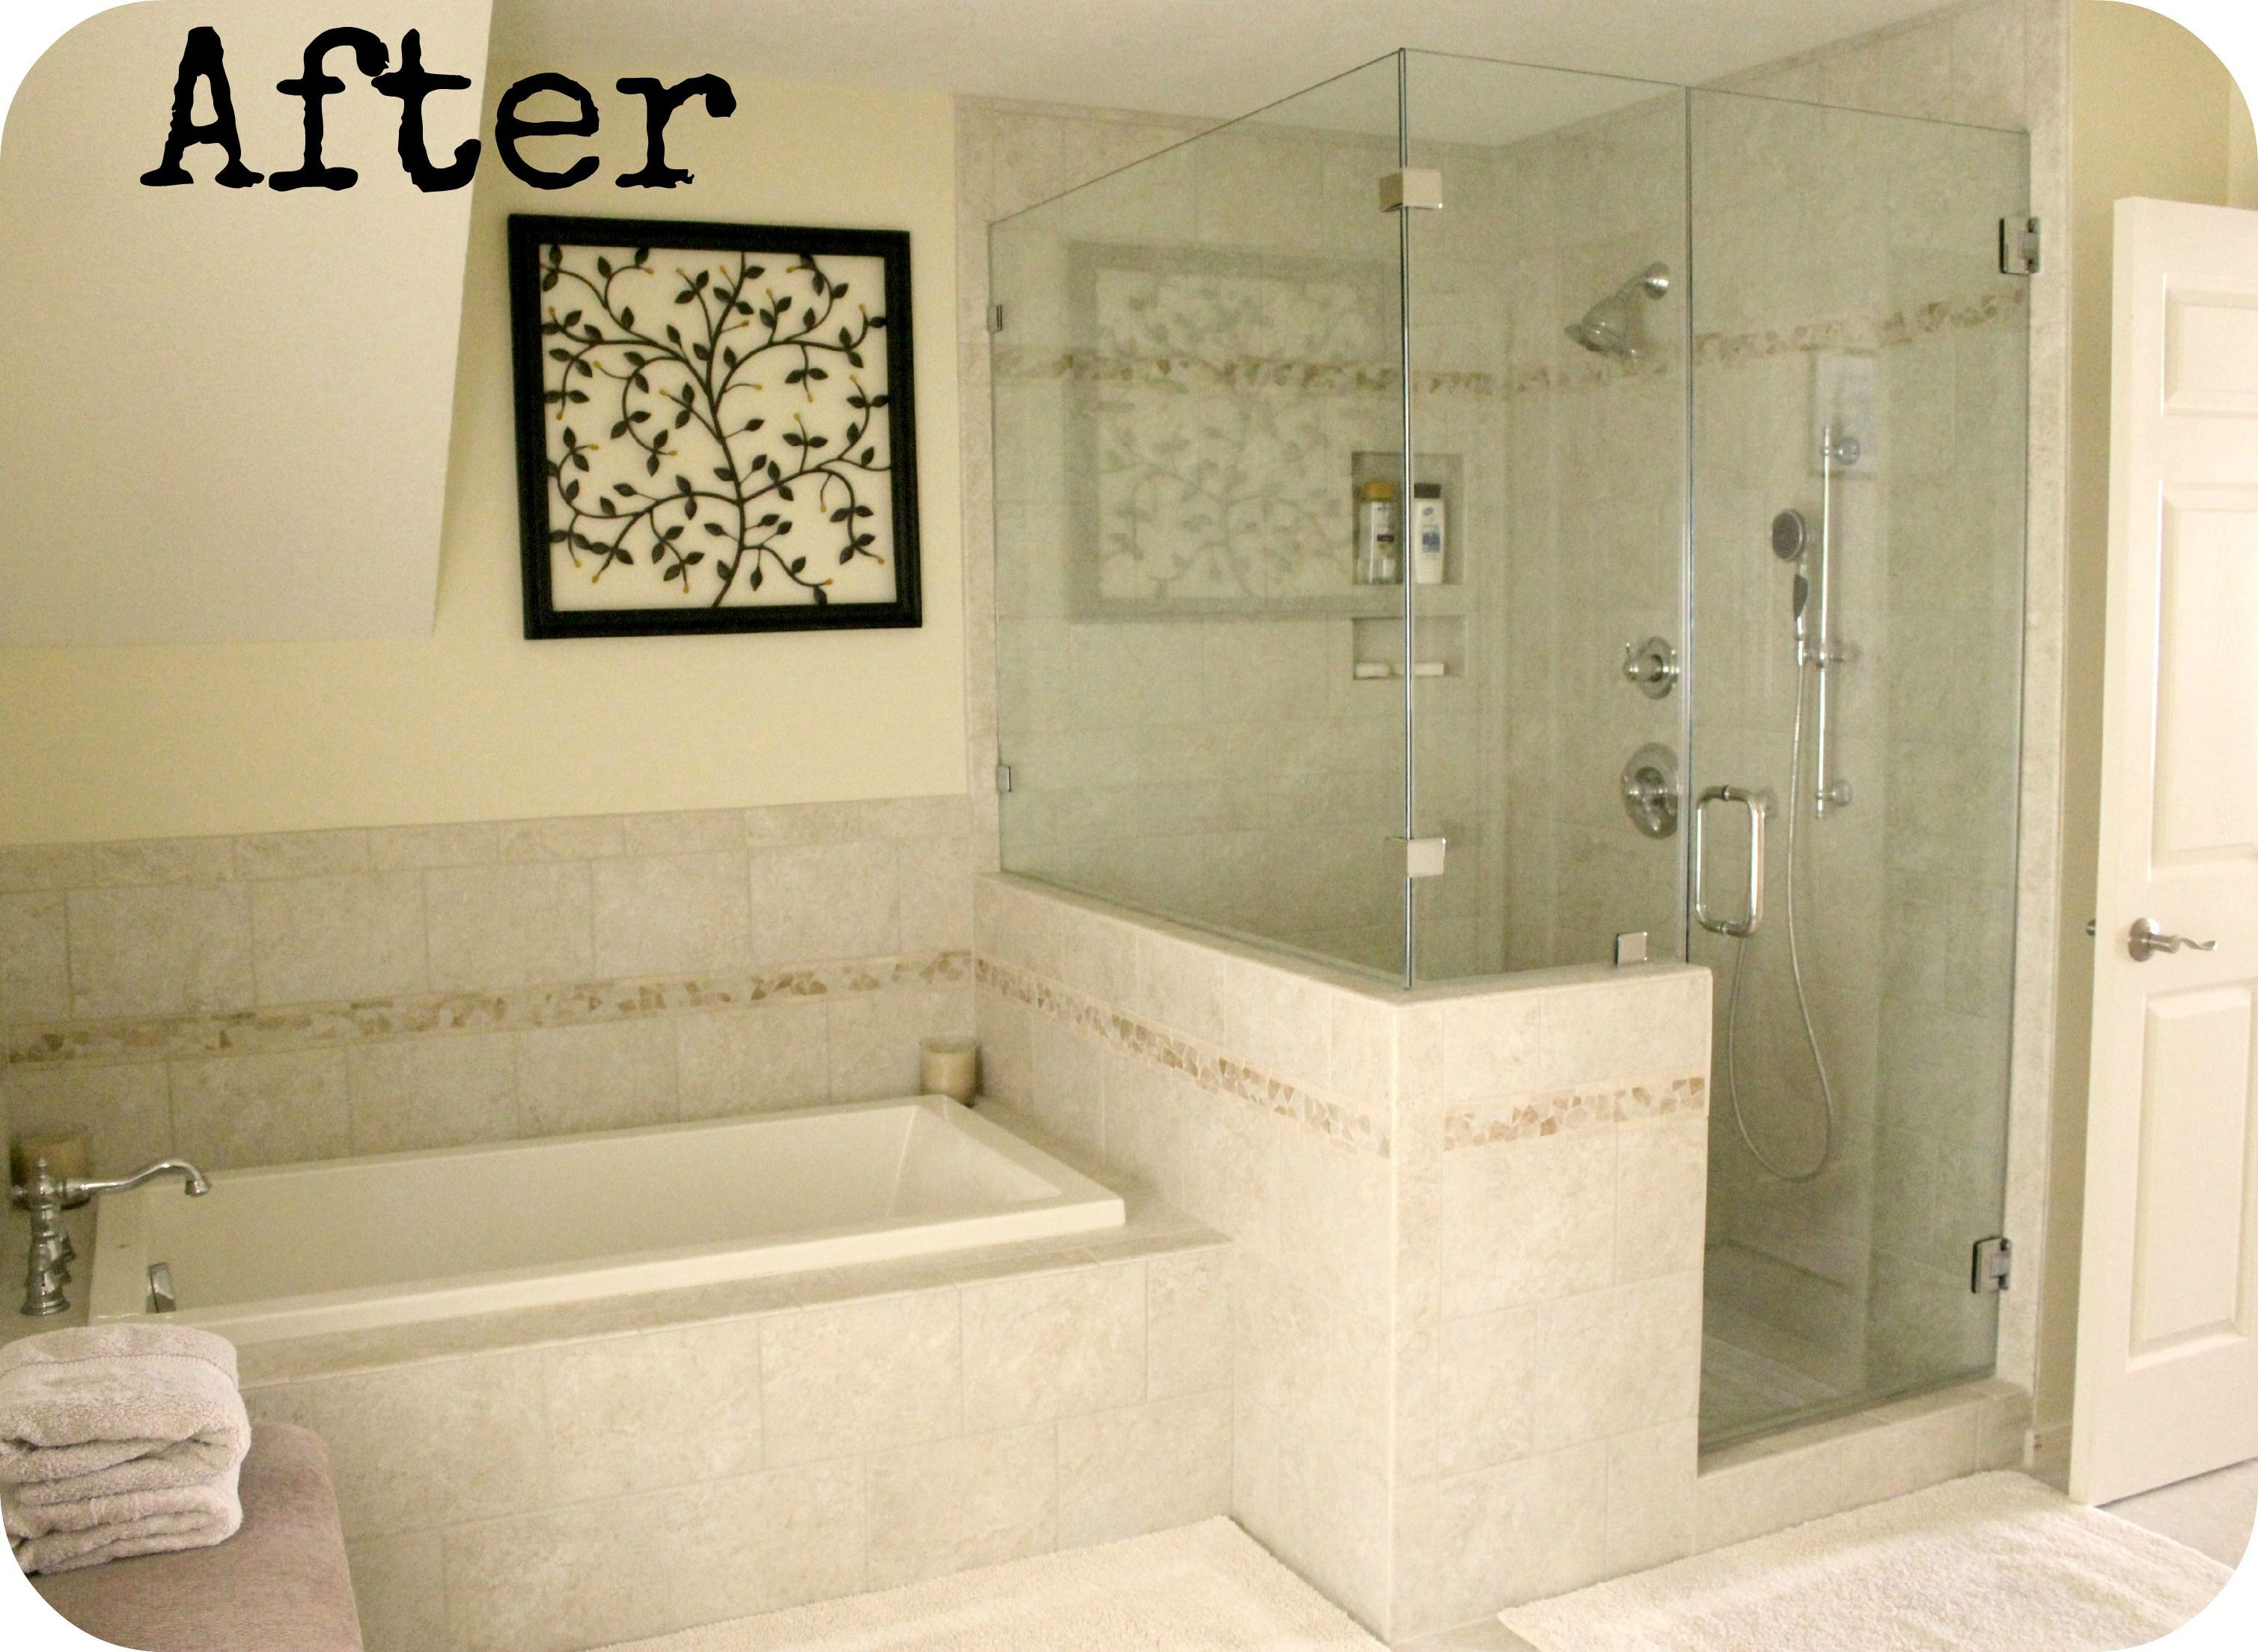 How to remove the outdated garden tub and enlarge the tiny shower without moving any walls